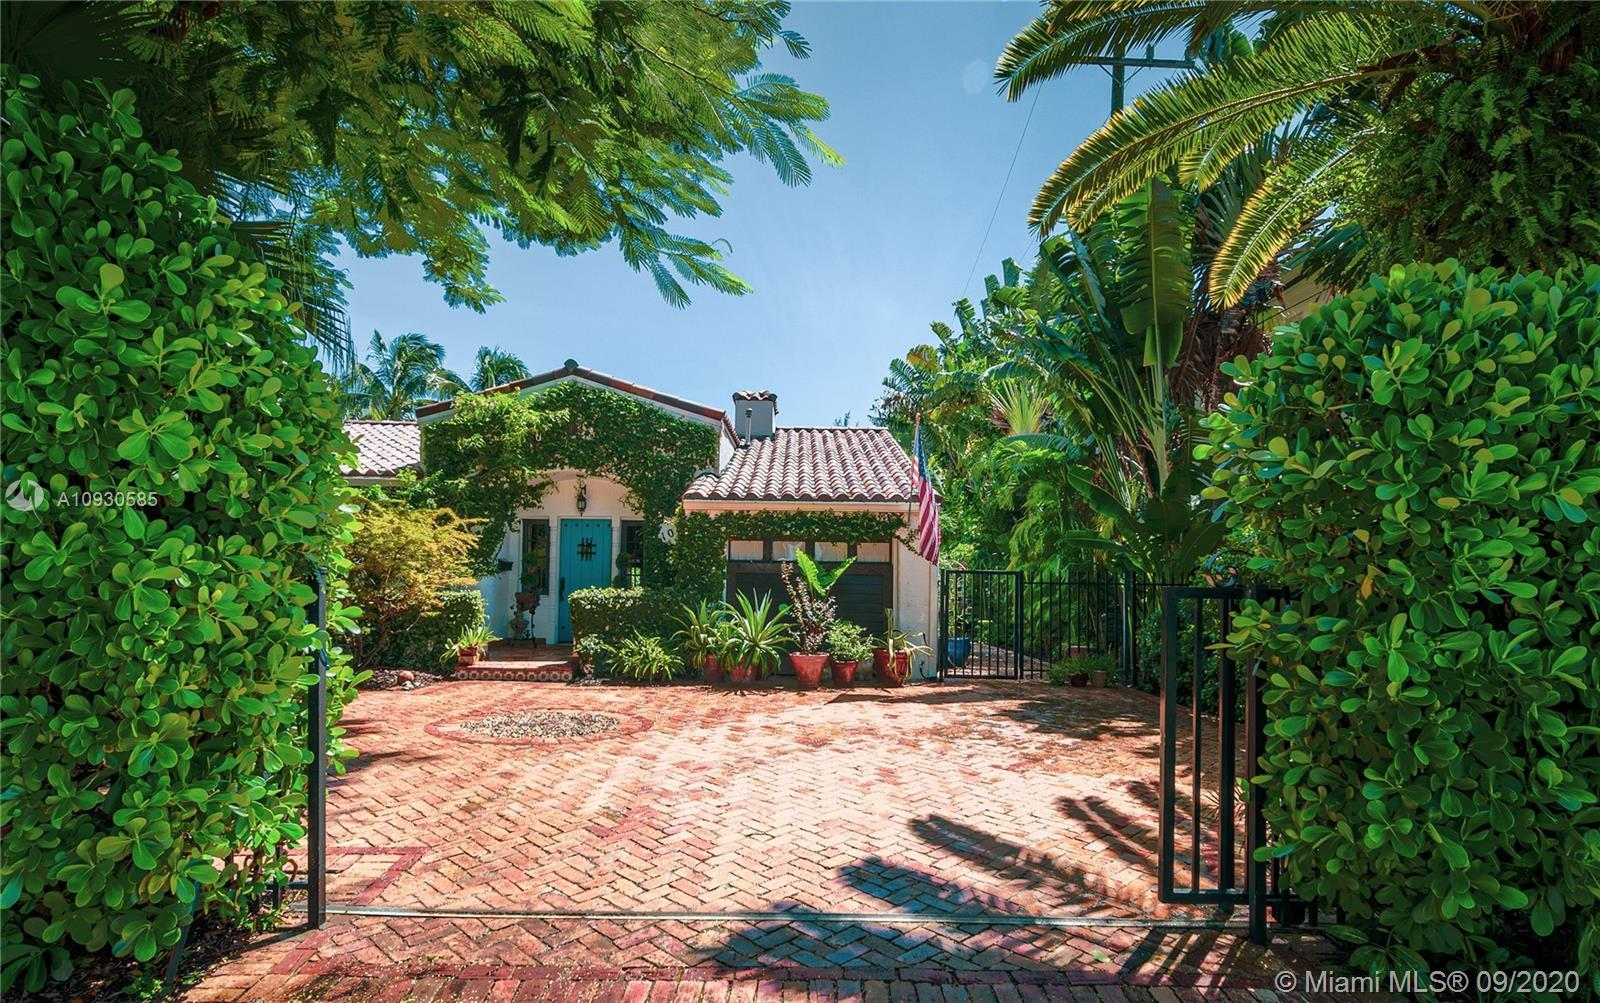 A gated driveway and plant walls seclude this 8,000 sqft parcel of land from the bustling neighborho